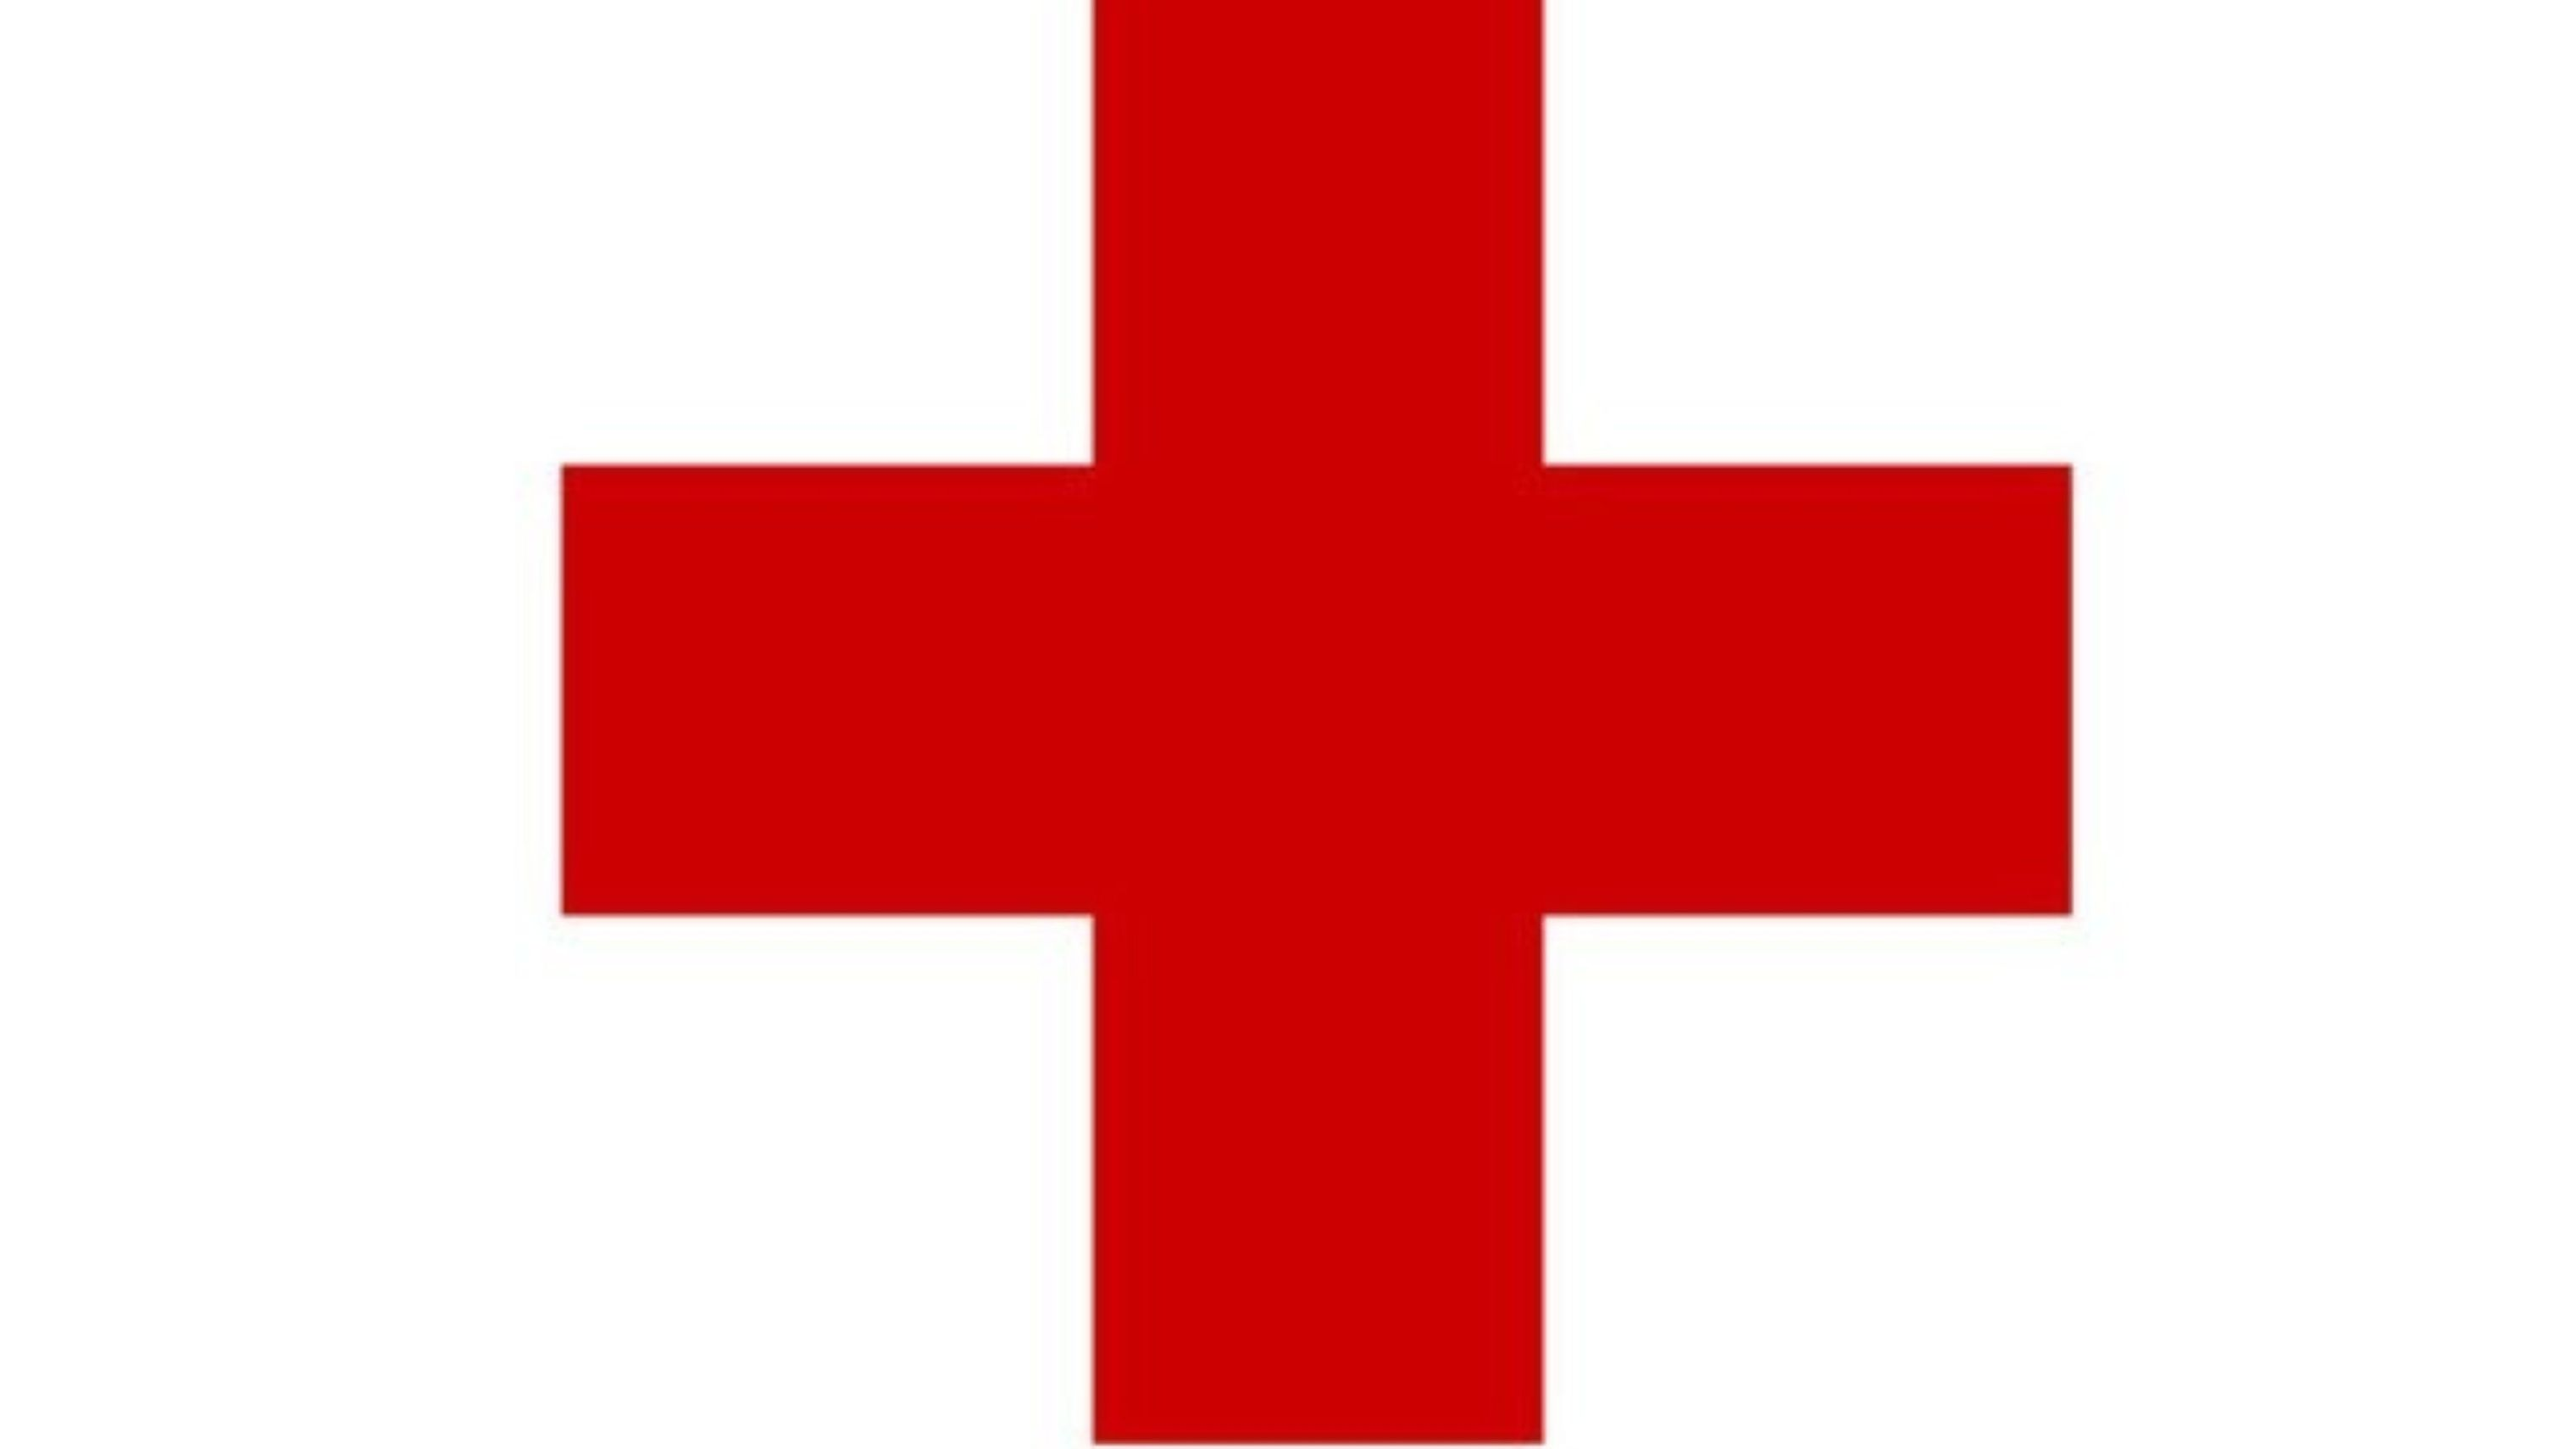 3040x1710 Logos For American Red Cross Logo Vector Clipart Free To Use